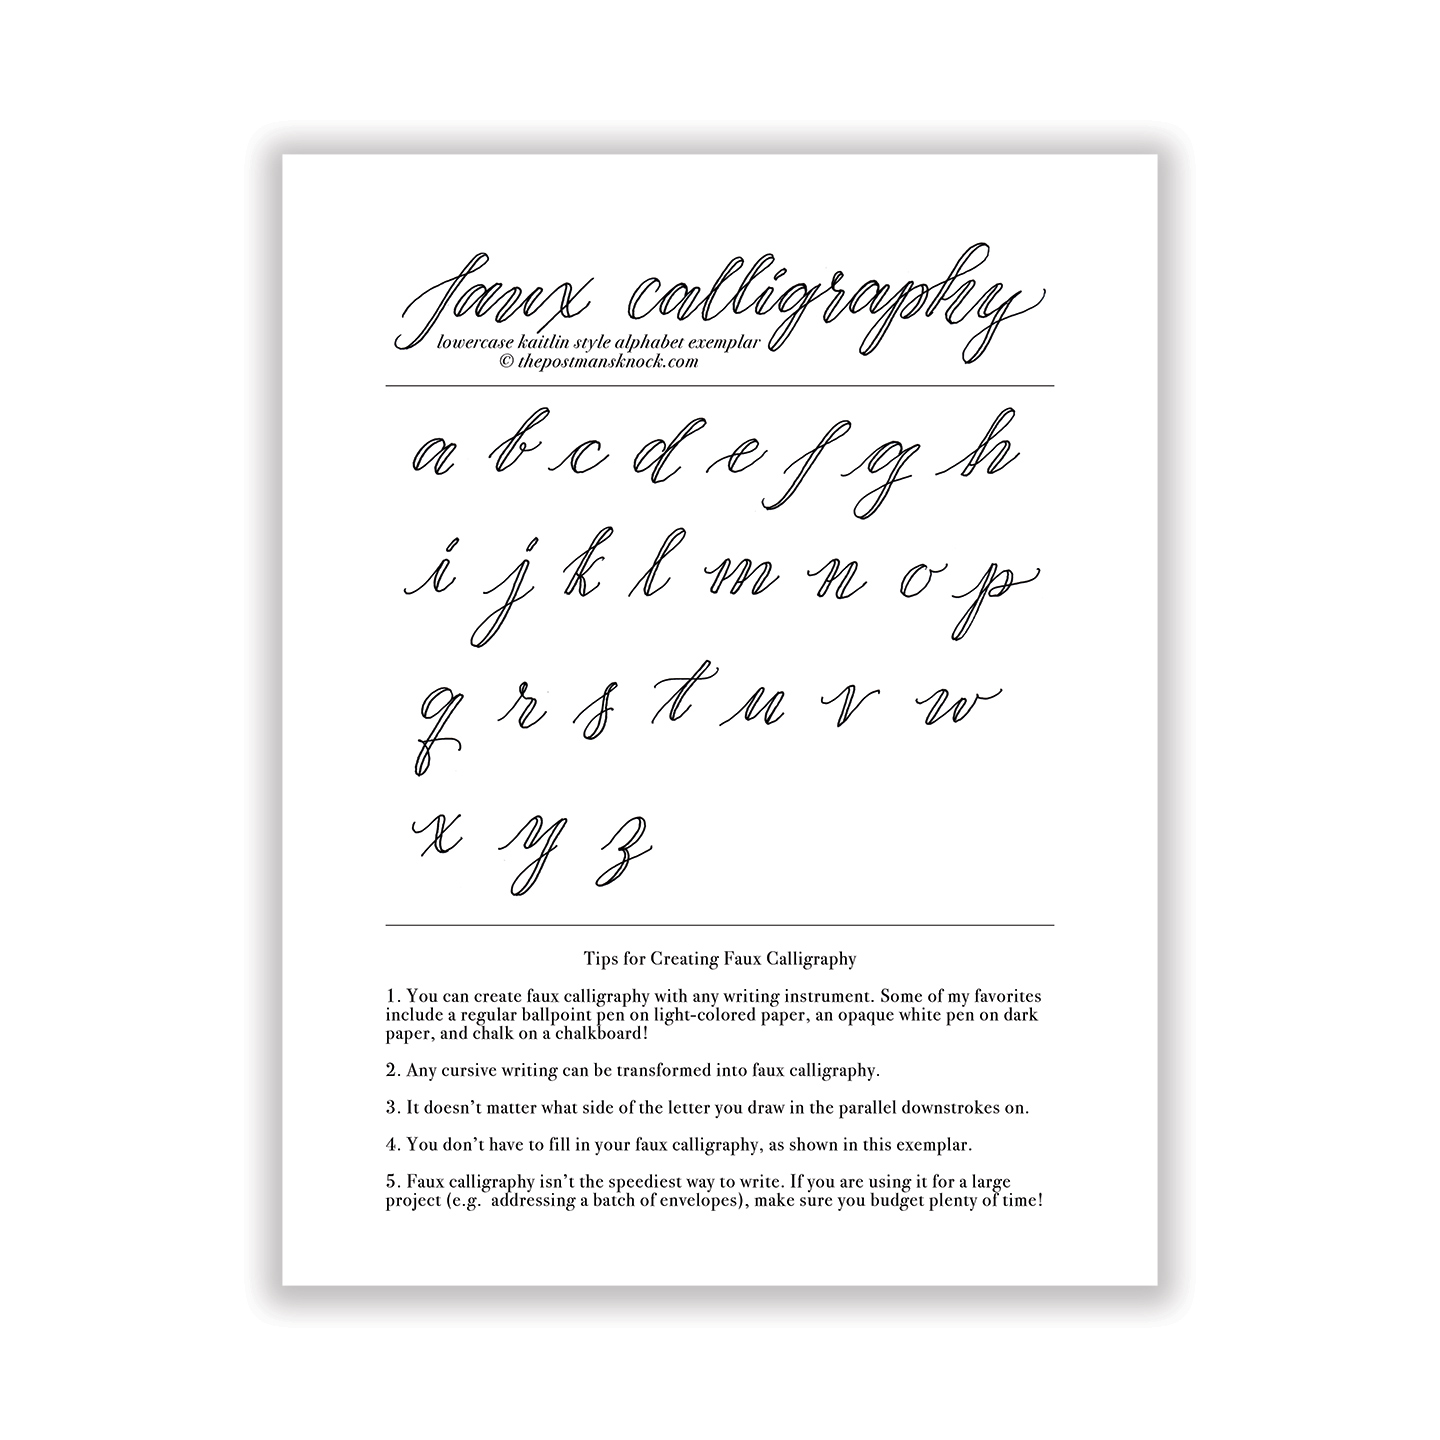 Free basic faux calligraphy exemplar kaitlin style the Calligraphy basics